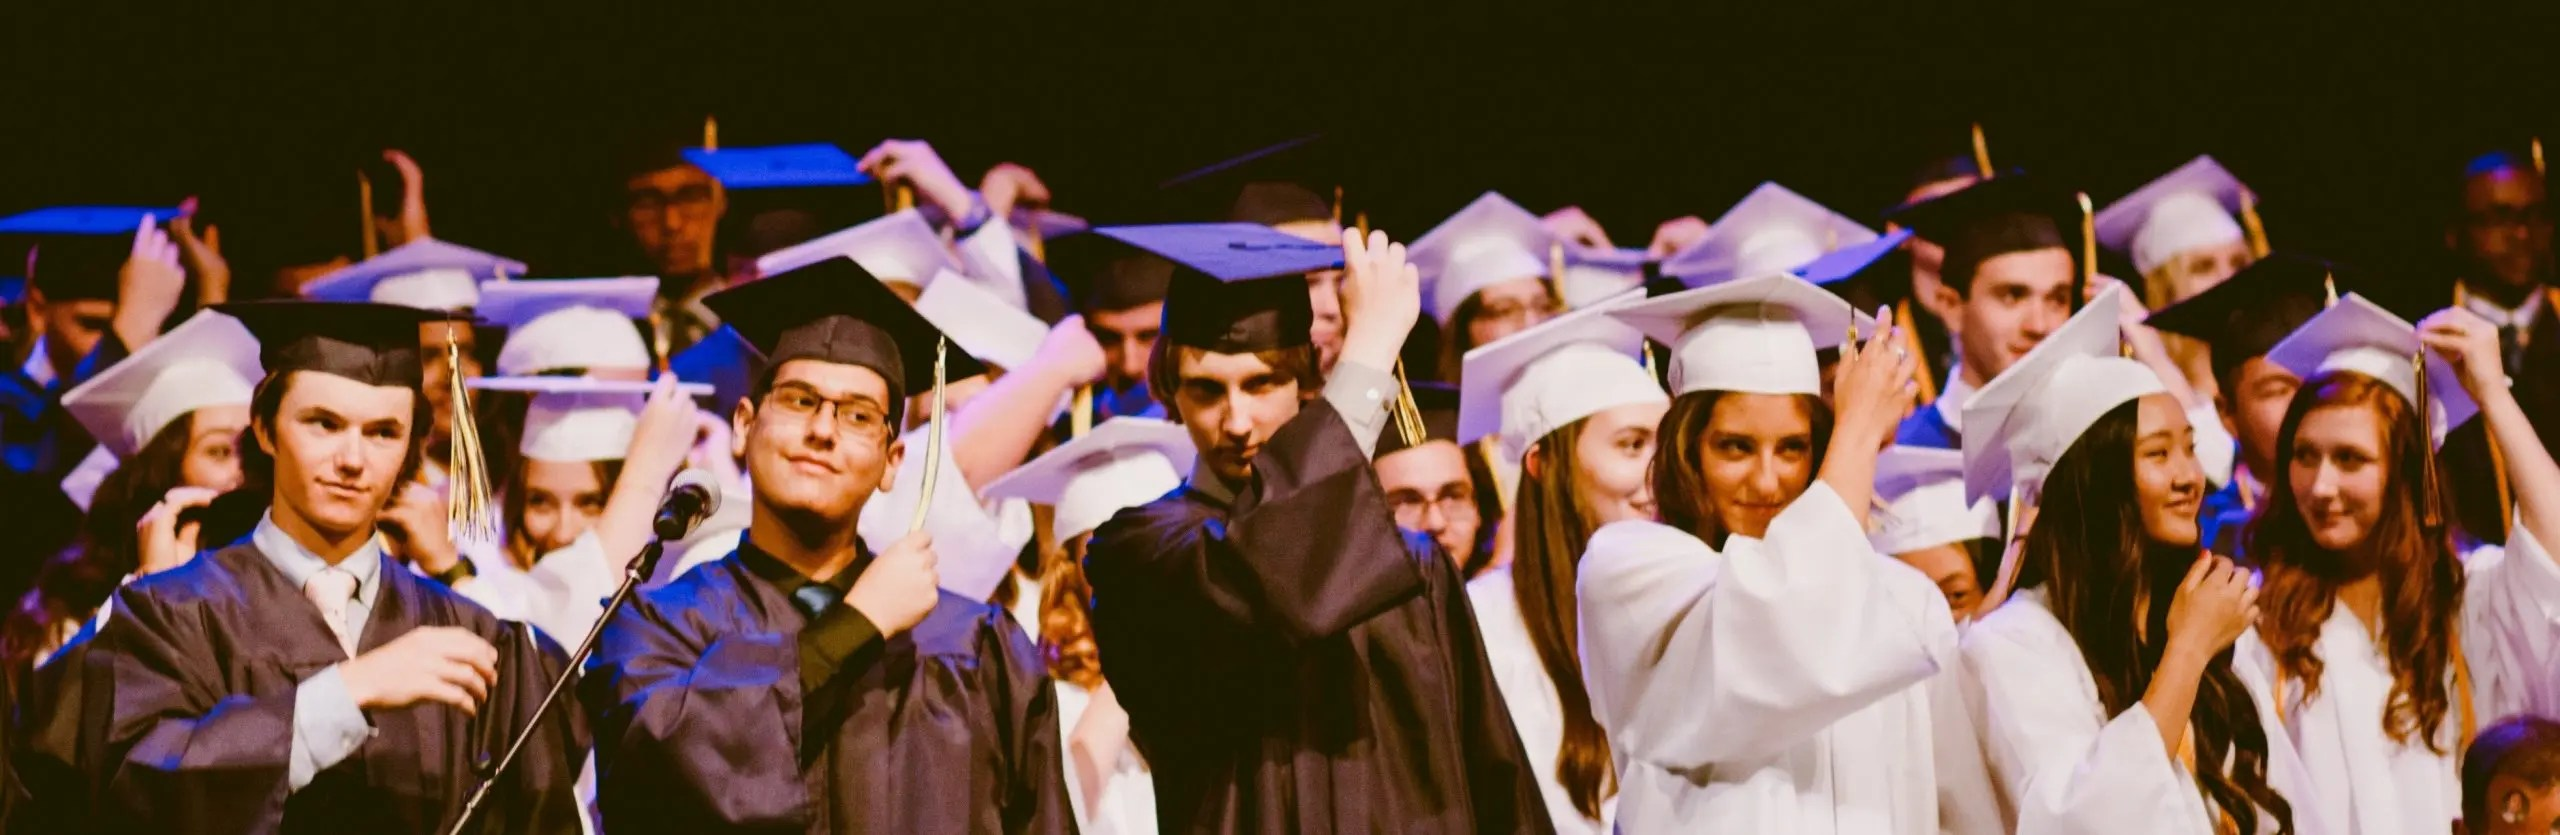 Graduates Moving the Tassels from their Hats